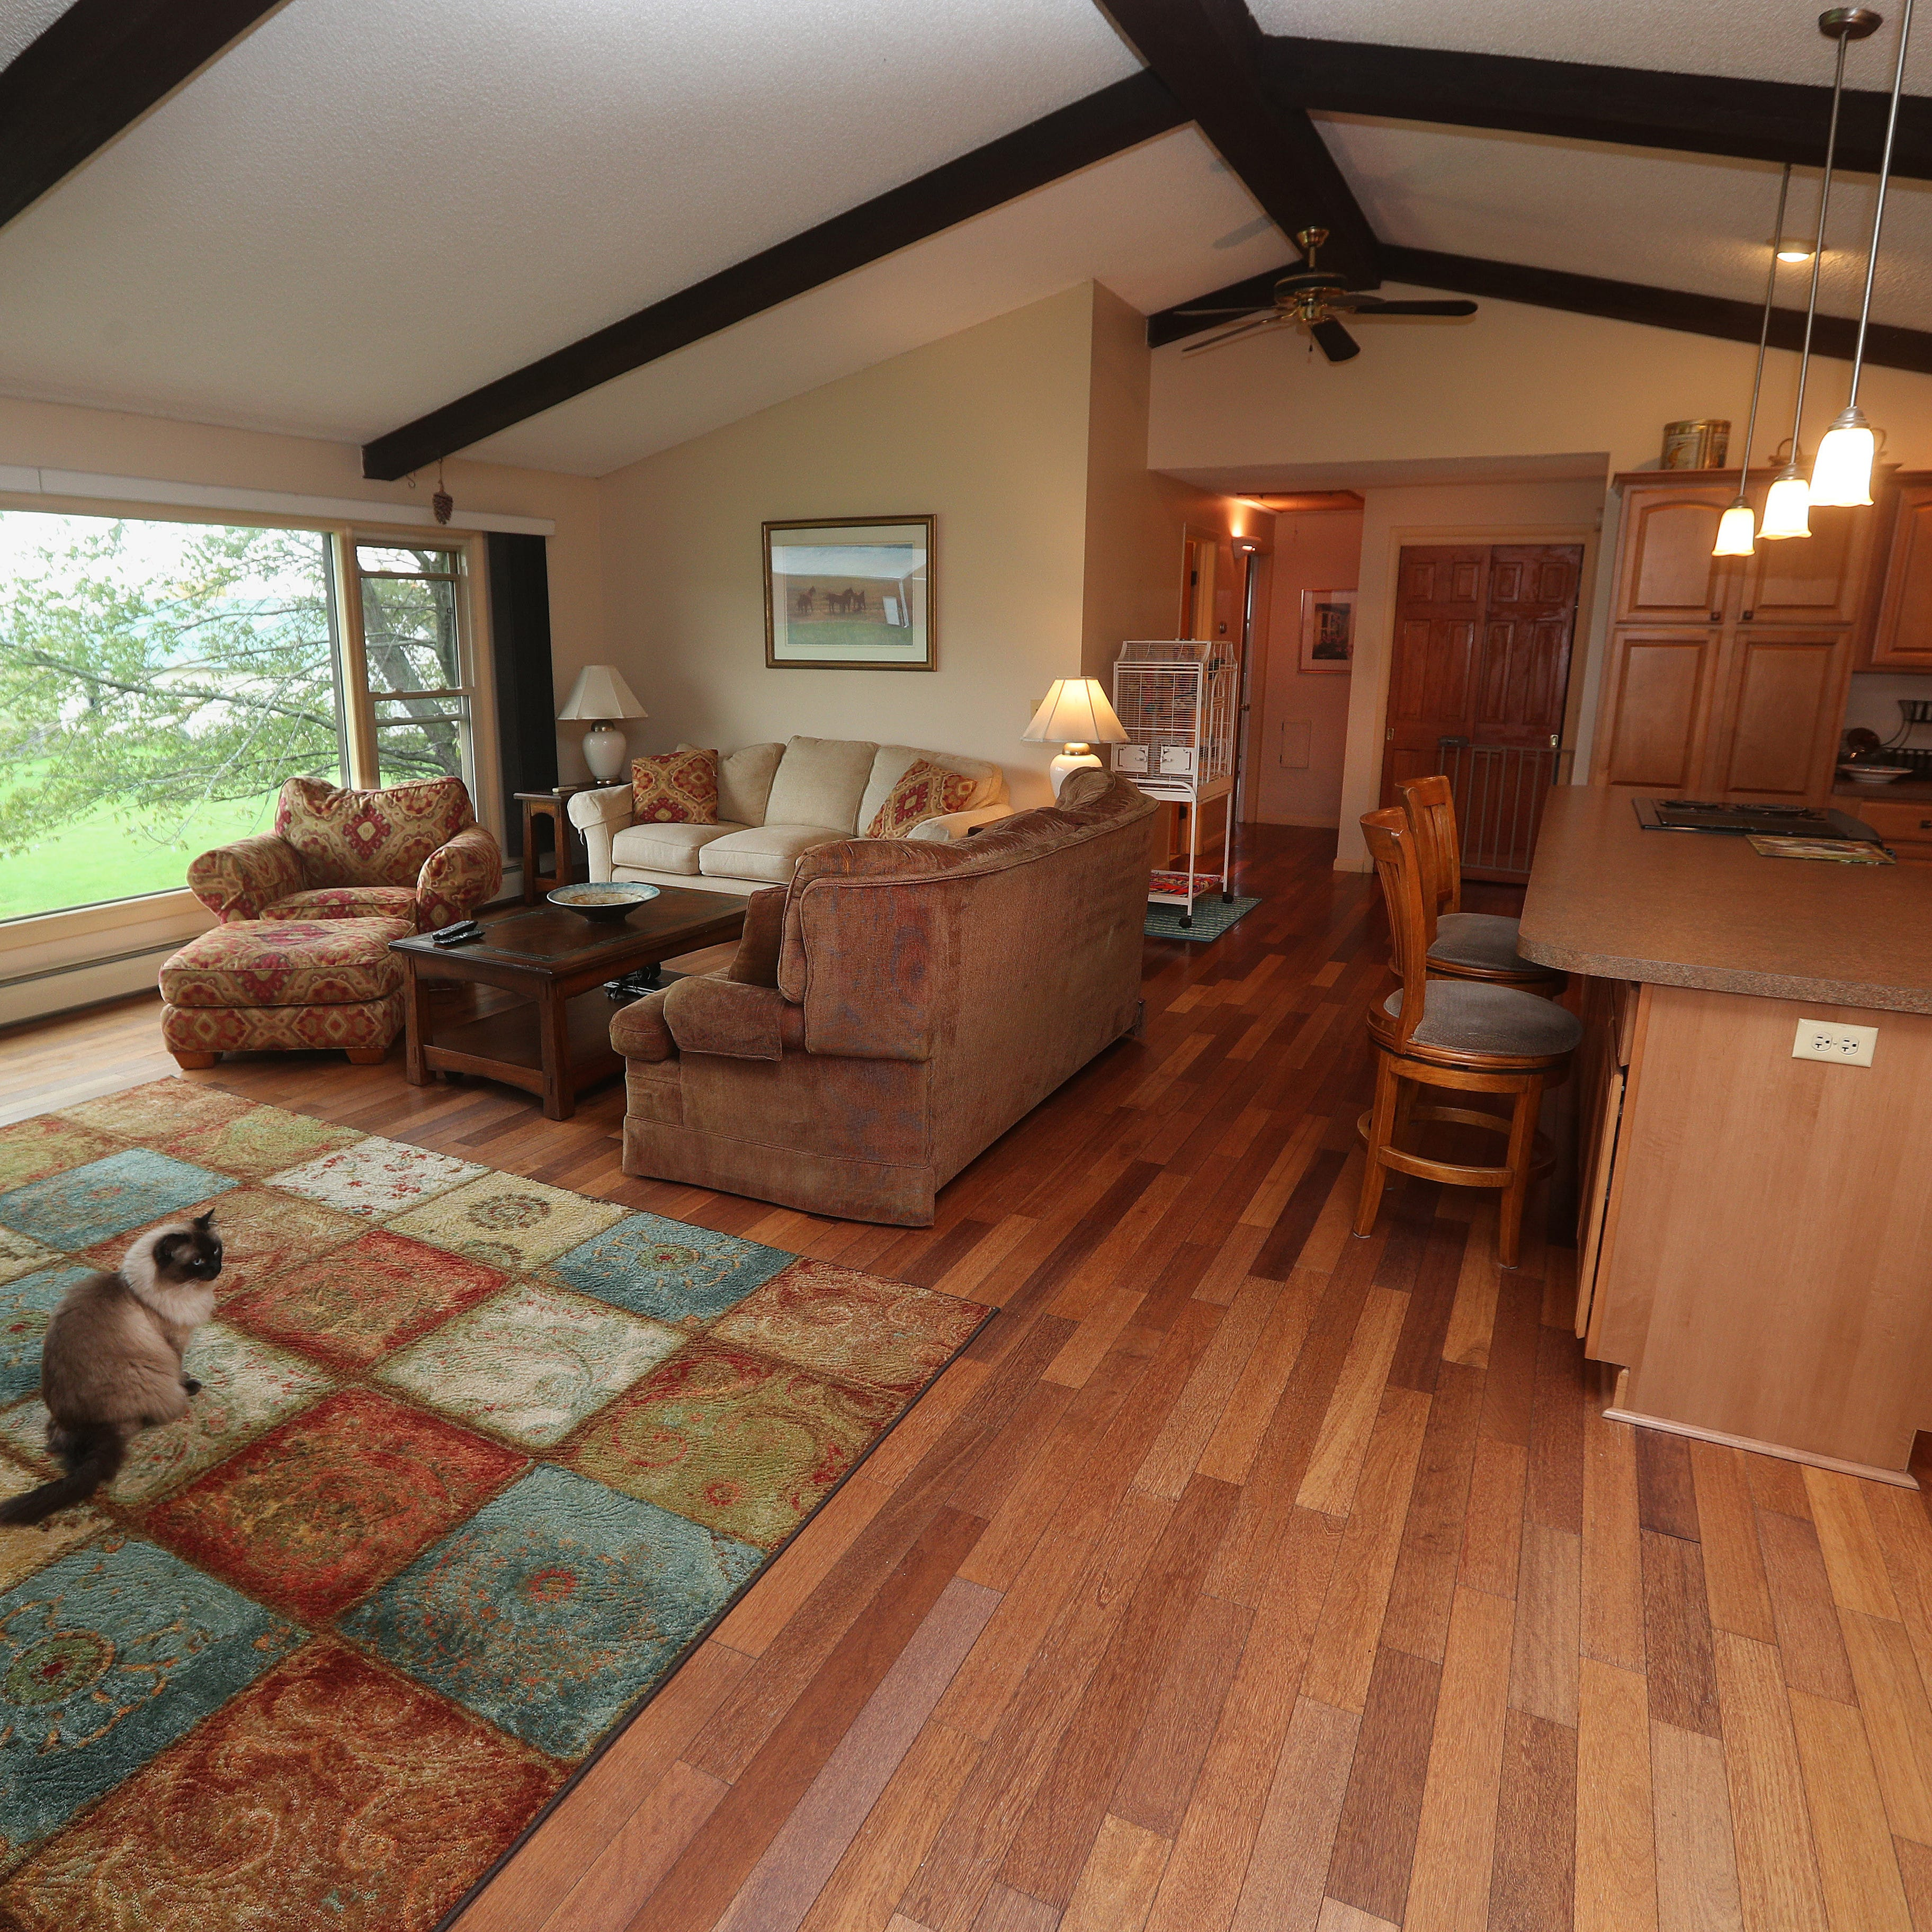 Exposed wood beams accentuate the open floor plan.